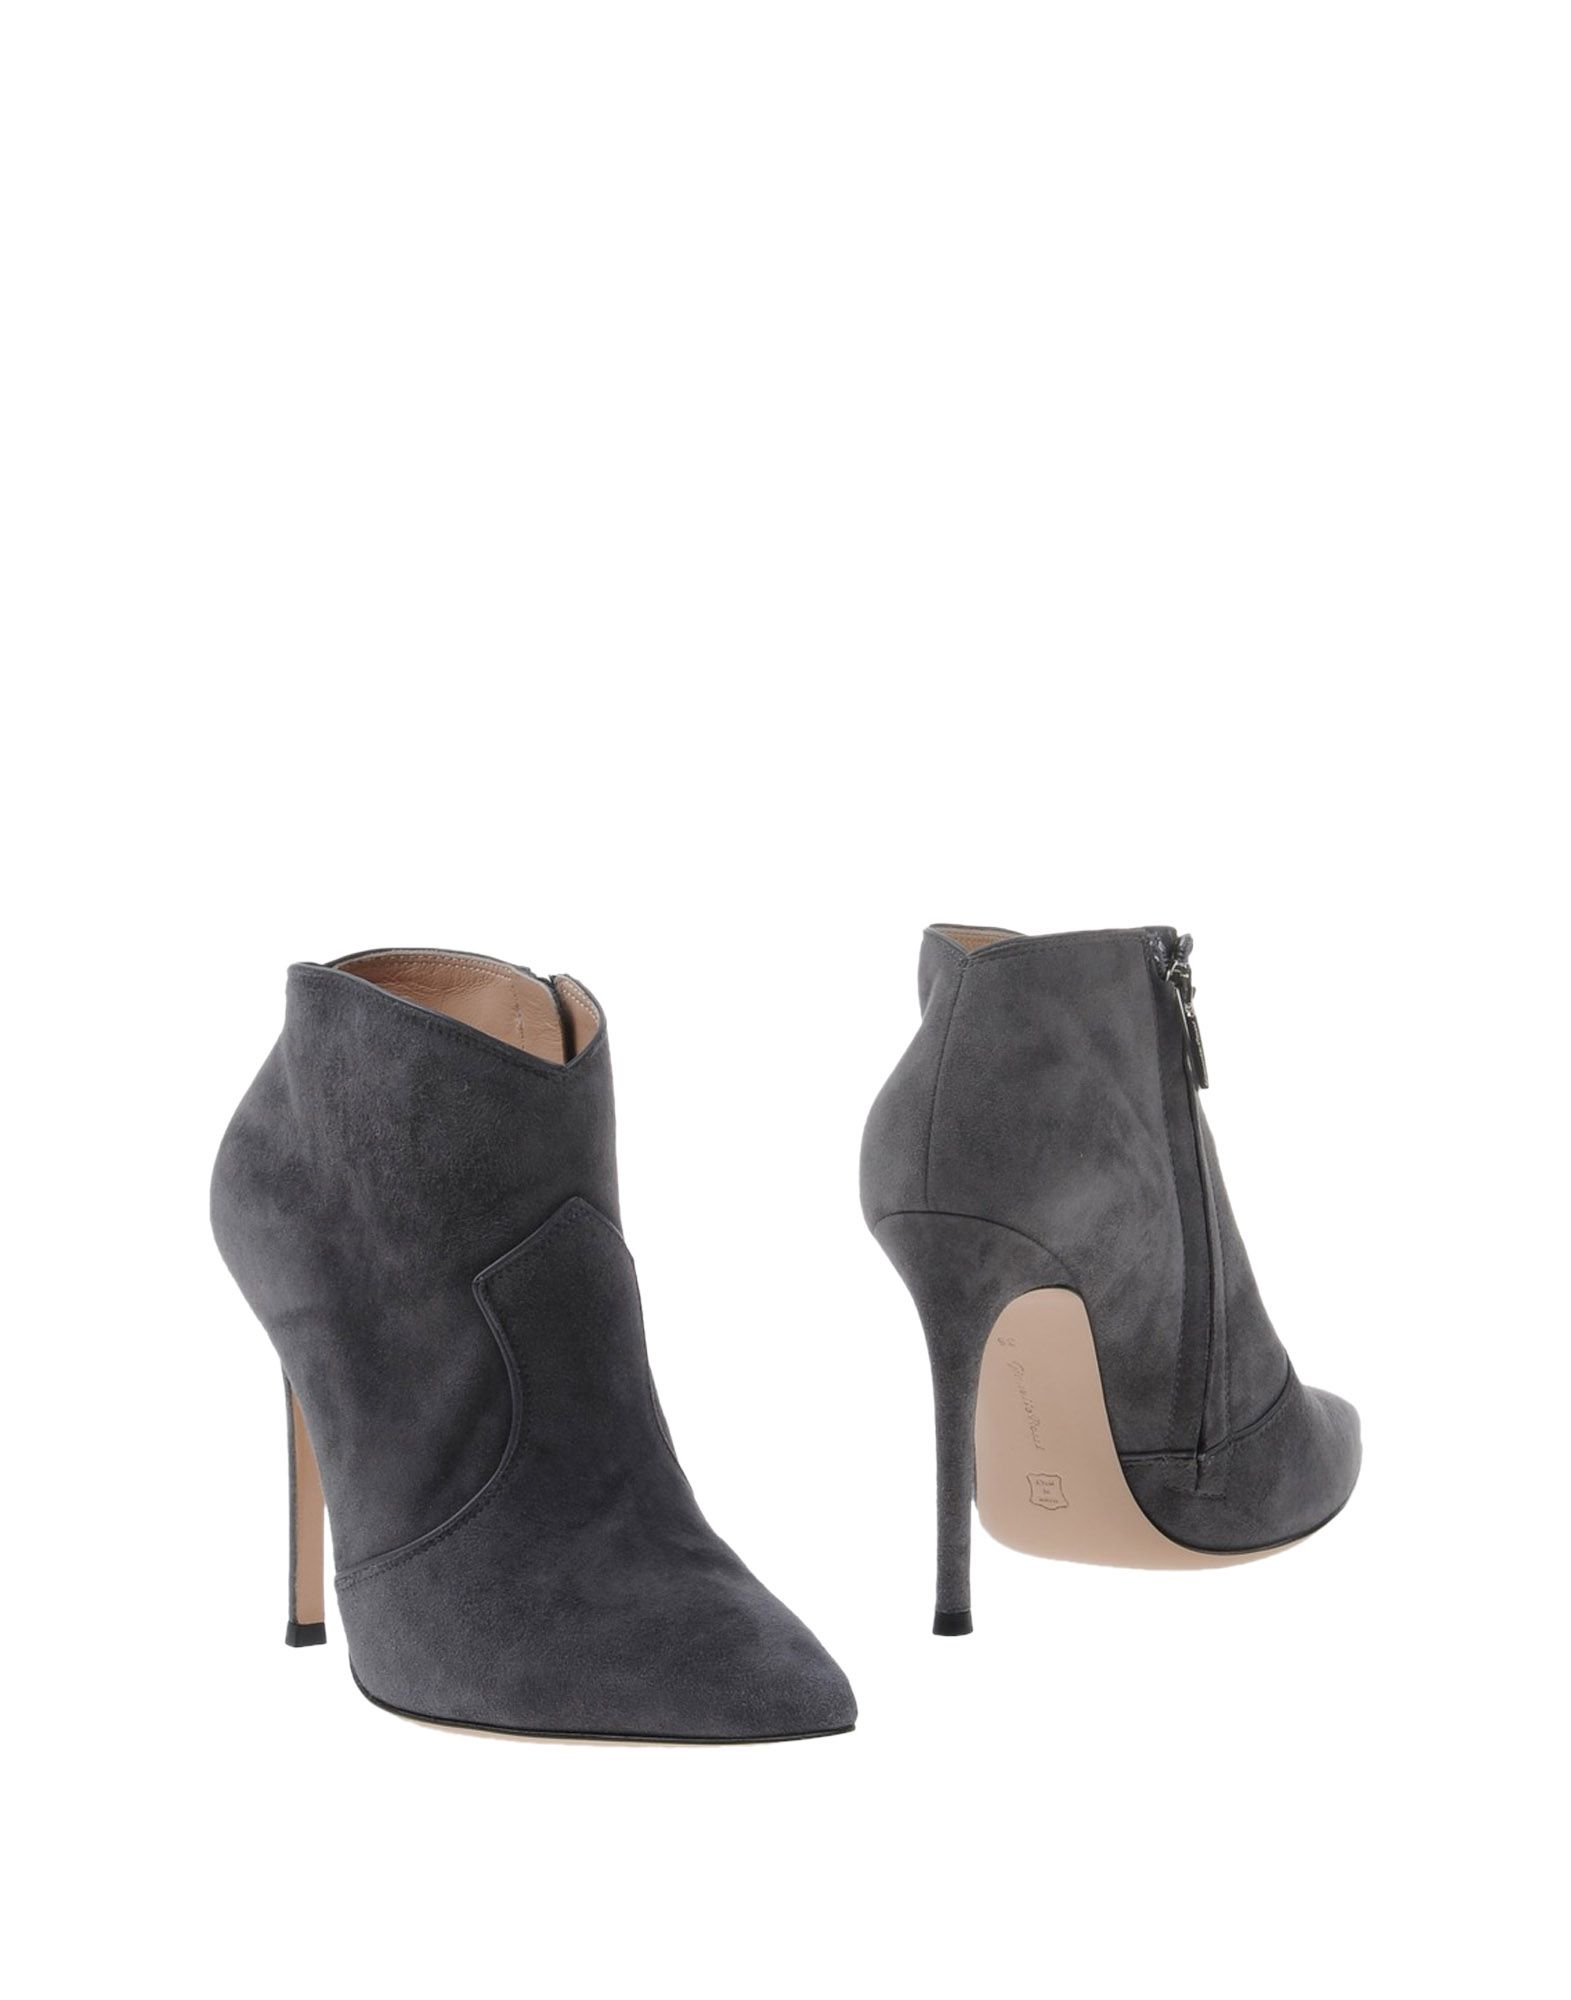 Bottine Gianvito Rossi Femme - Bottines Gianvito Rossi sur